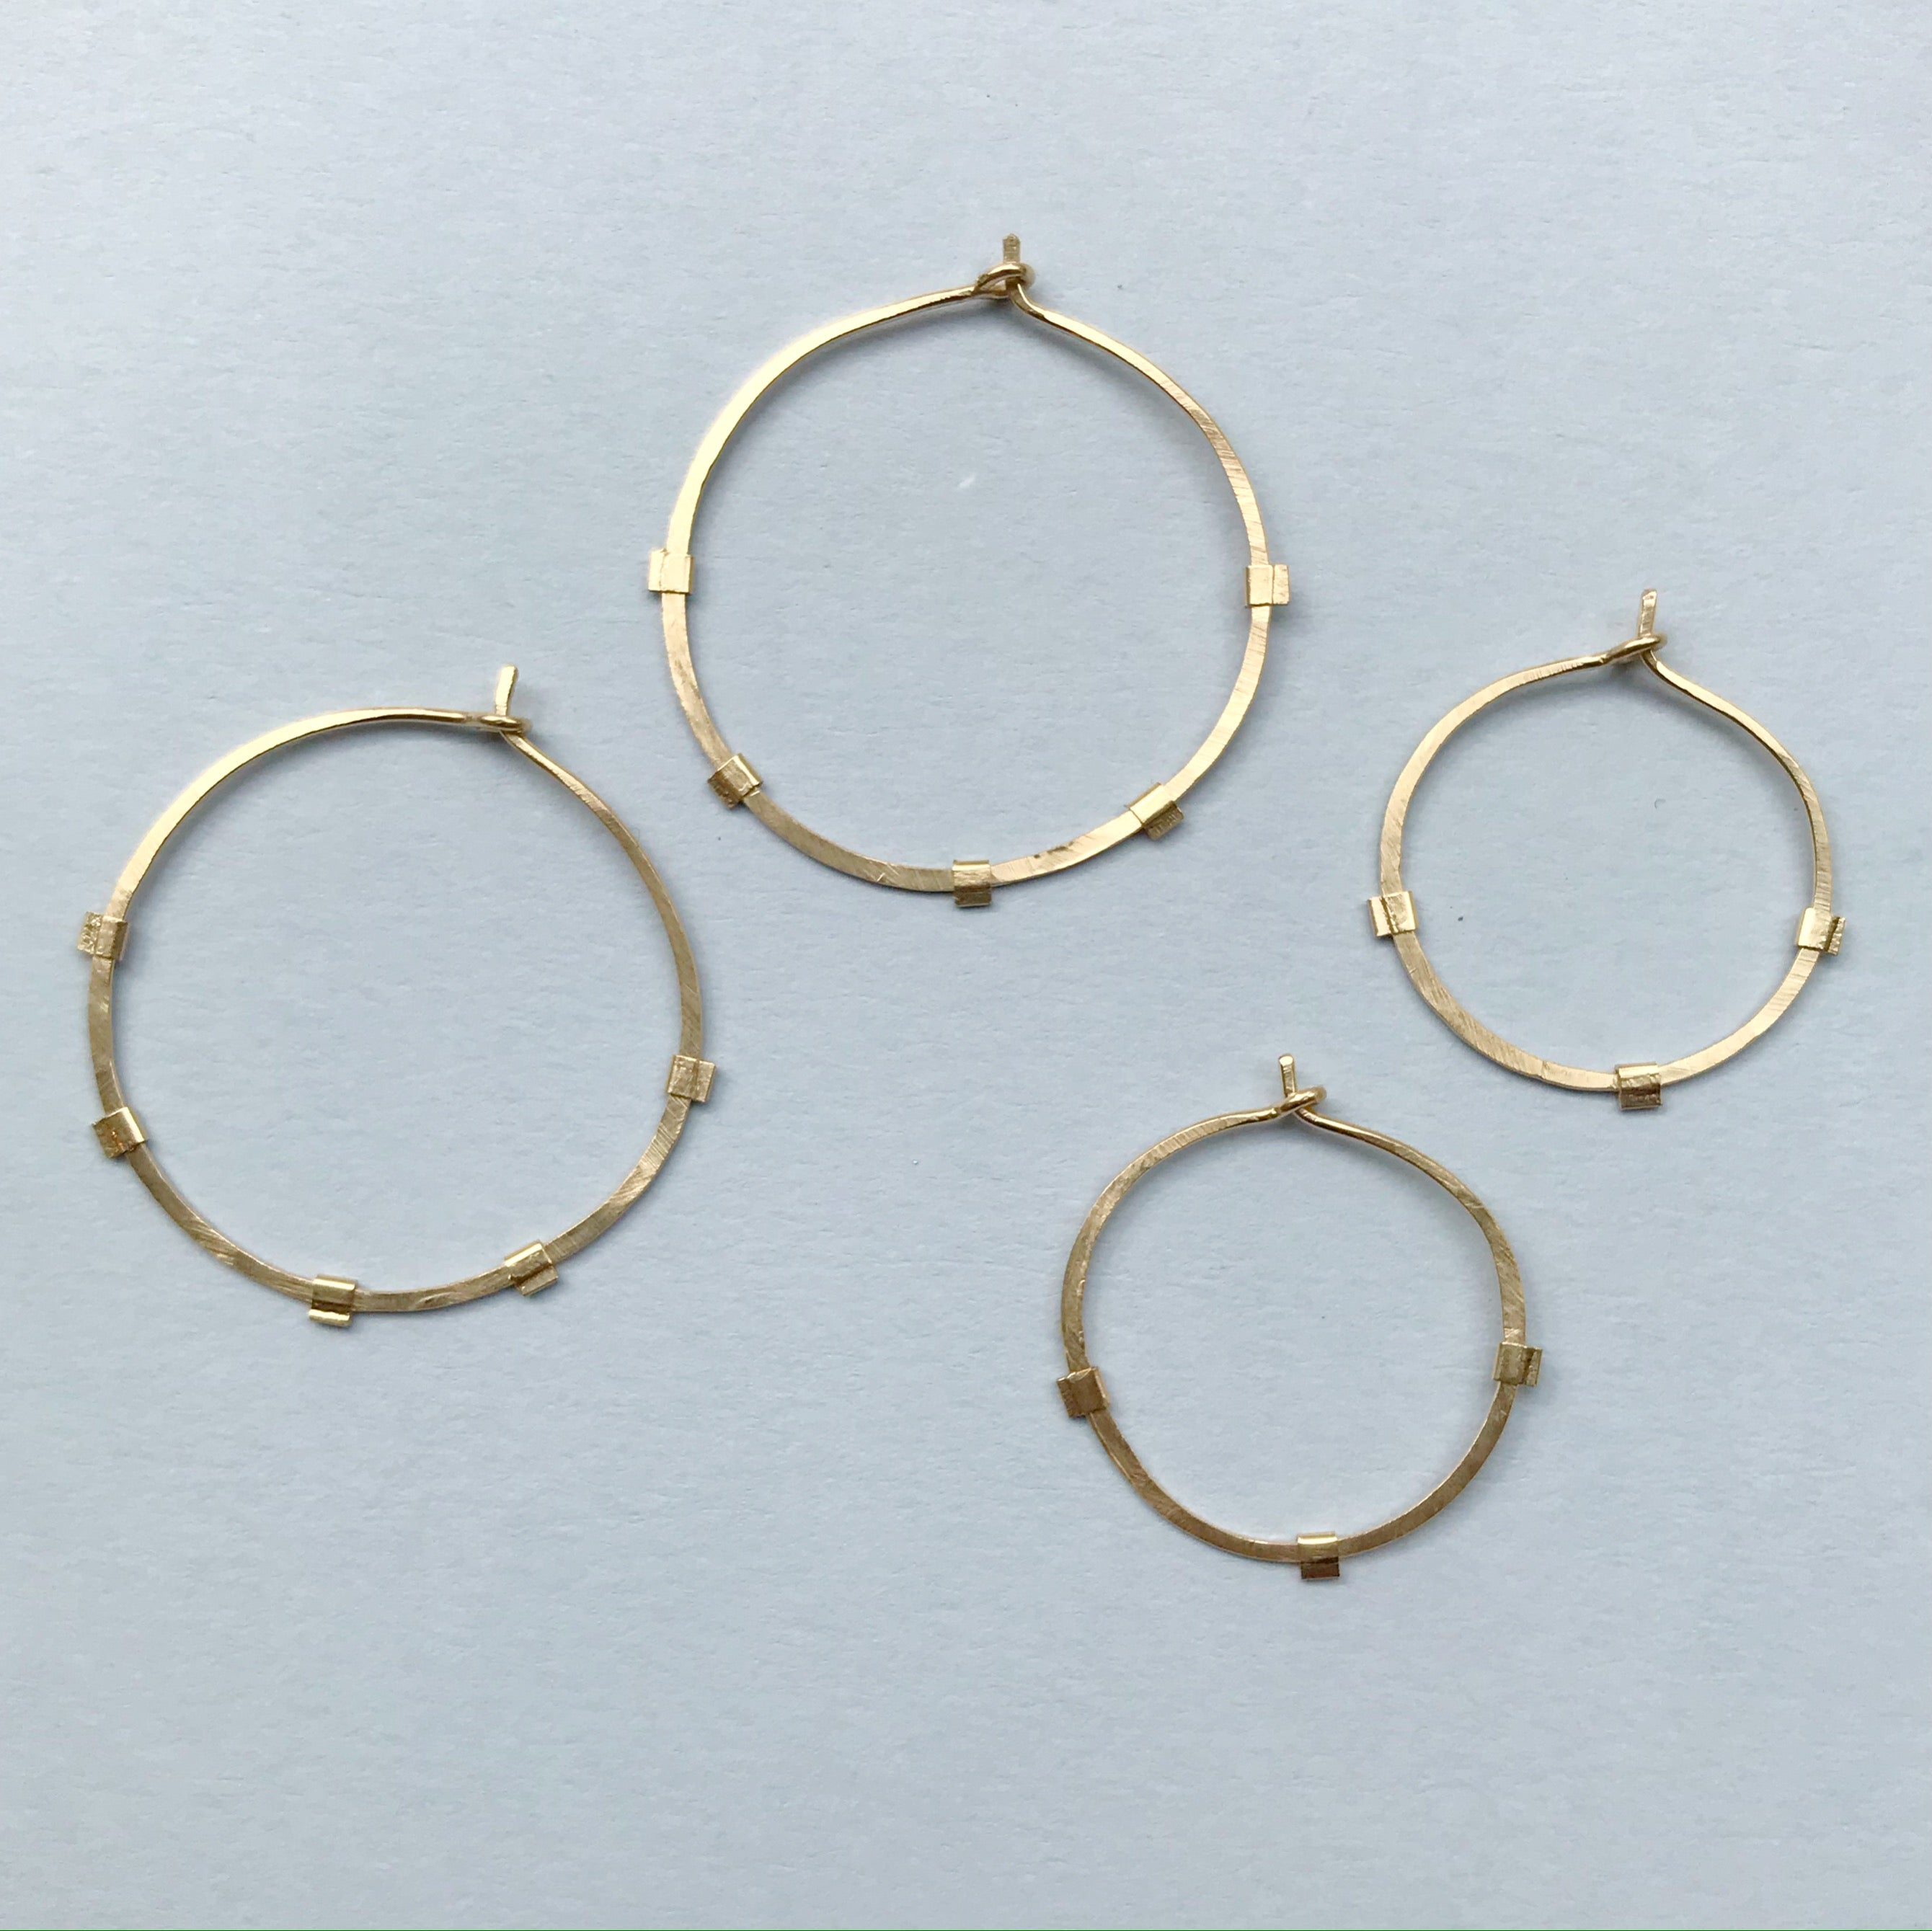 Sunburst Hoops - 14K Gold-Filled on Gold